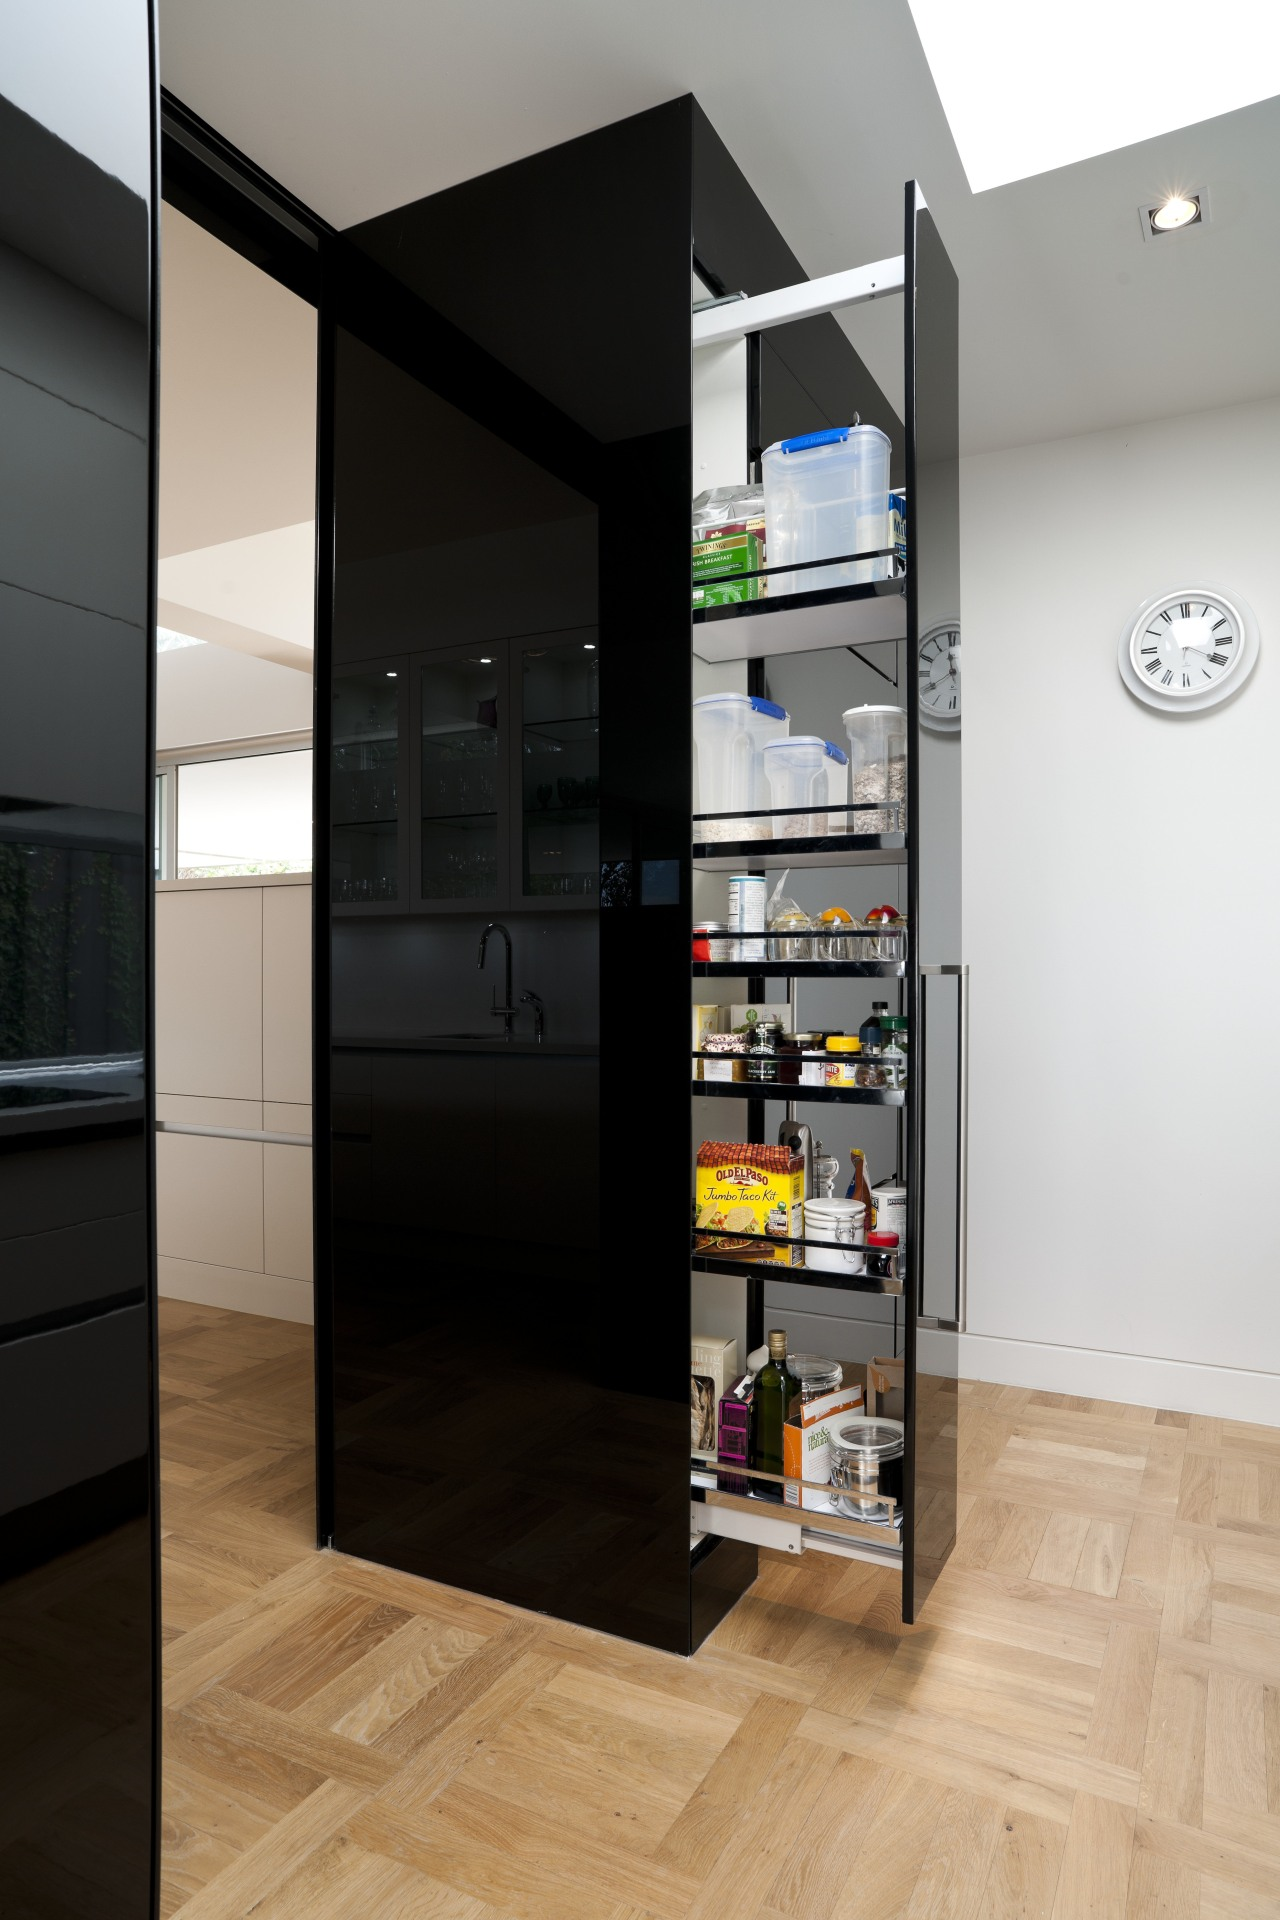 Black glass forms the sides of the cabinets cabinetry, floor, interior design, shelf, shelving, black, white